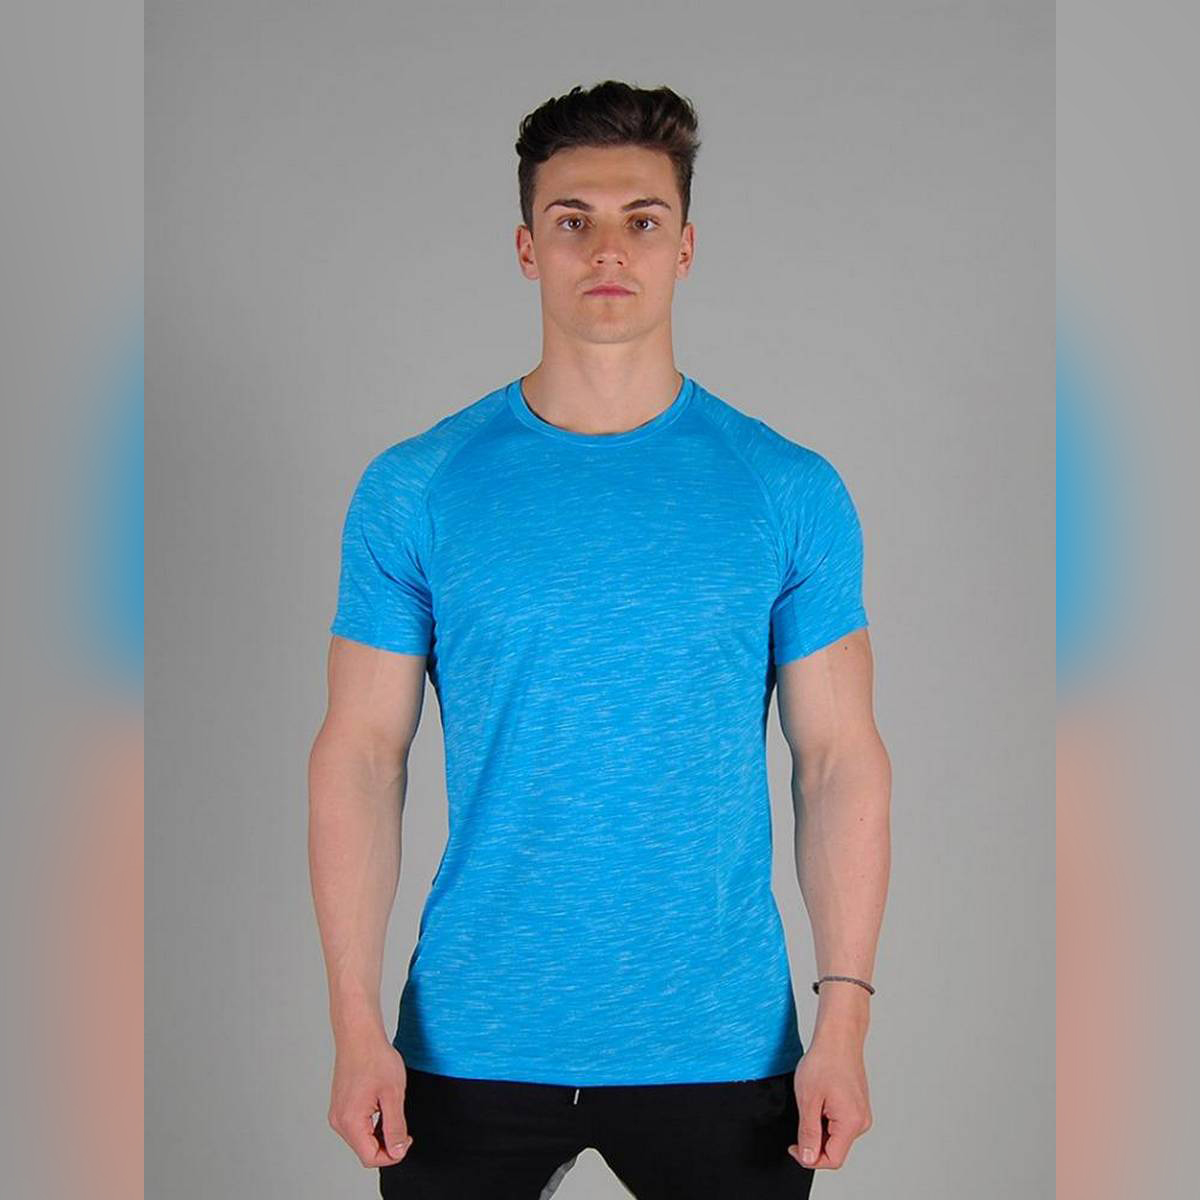 Gym Workout Shirts for Boys Casual T Shirts - Long Sleeves T Shirts for Men